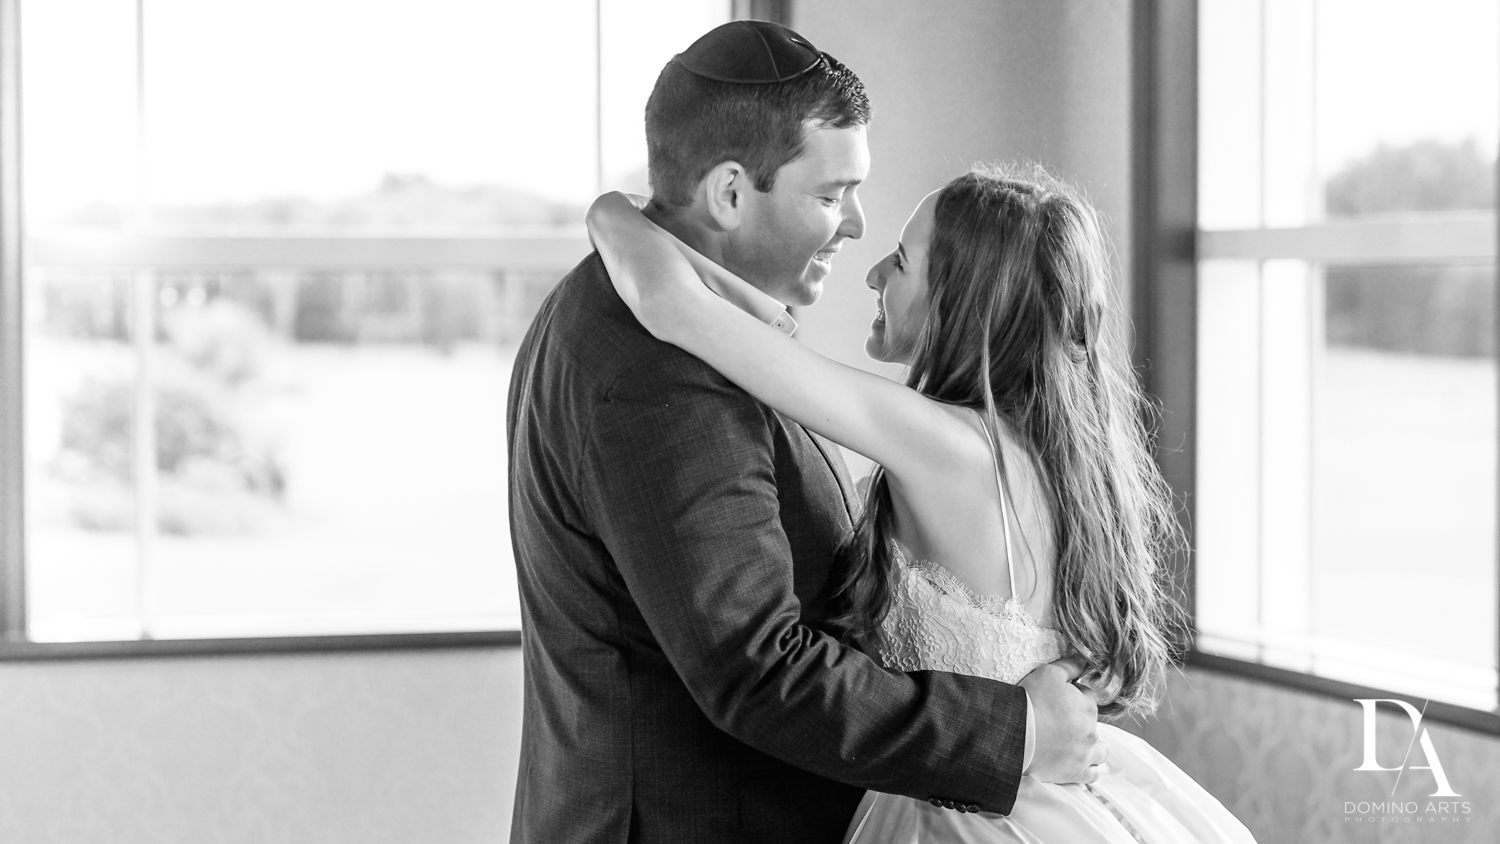 In love at Beautiful Intimate Wedding at Mizner Country Club by Domino Arts Photography